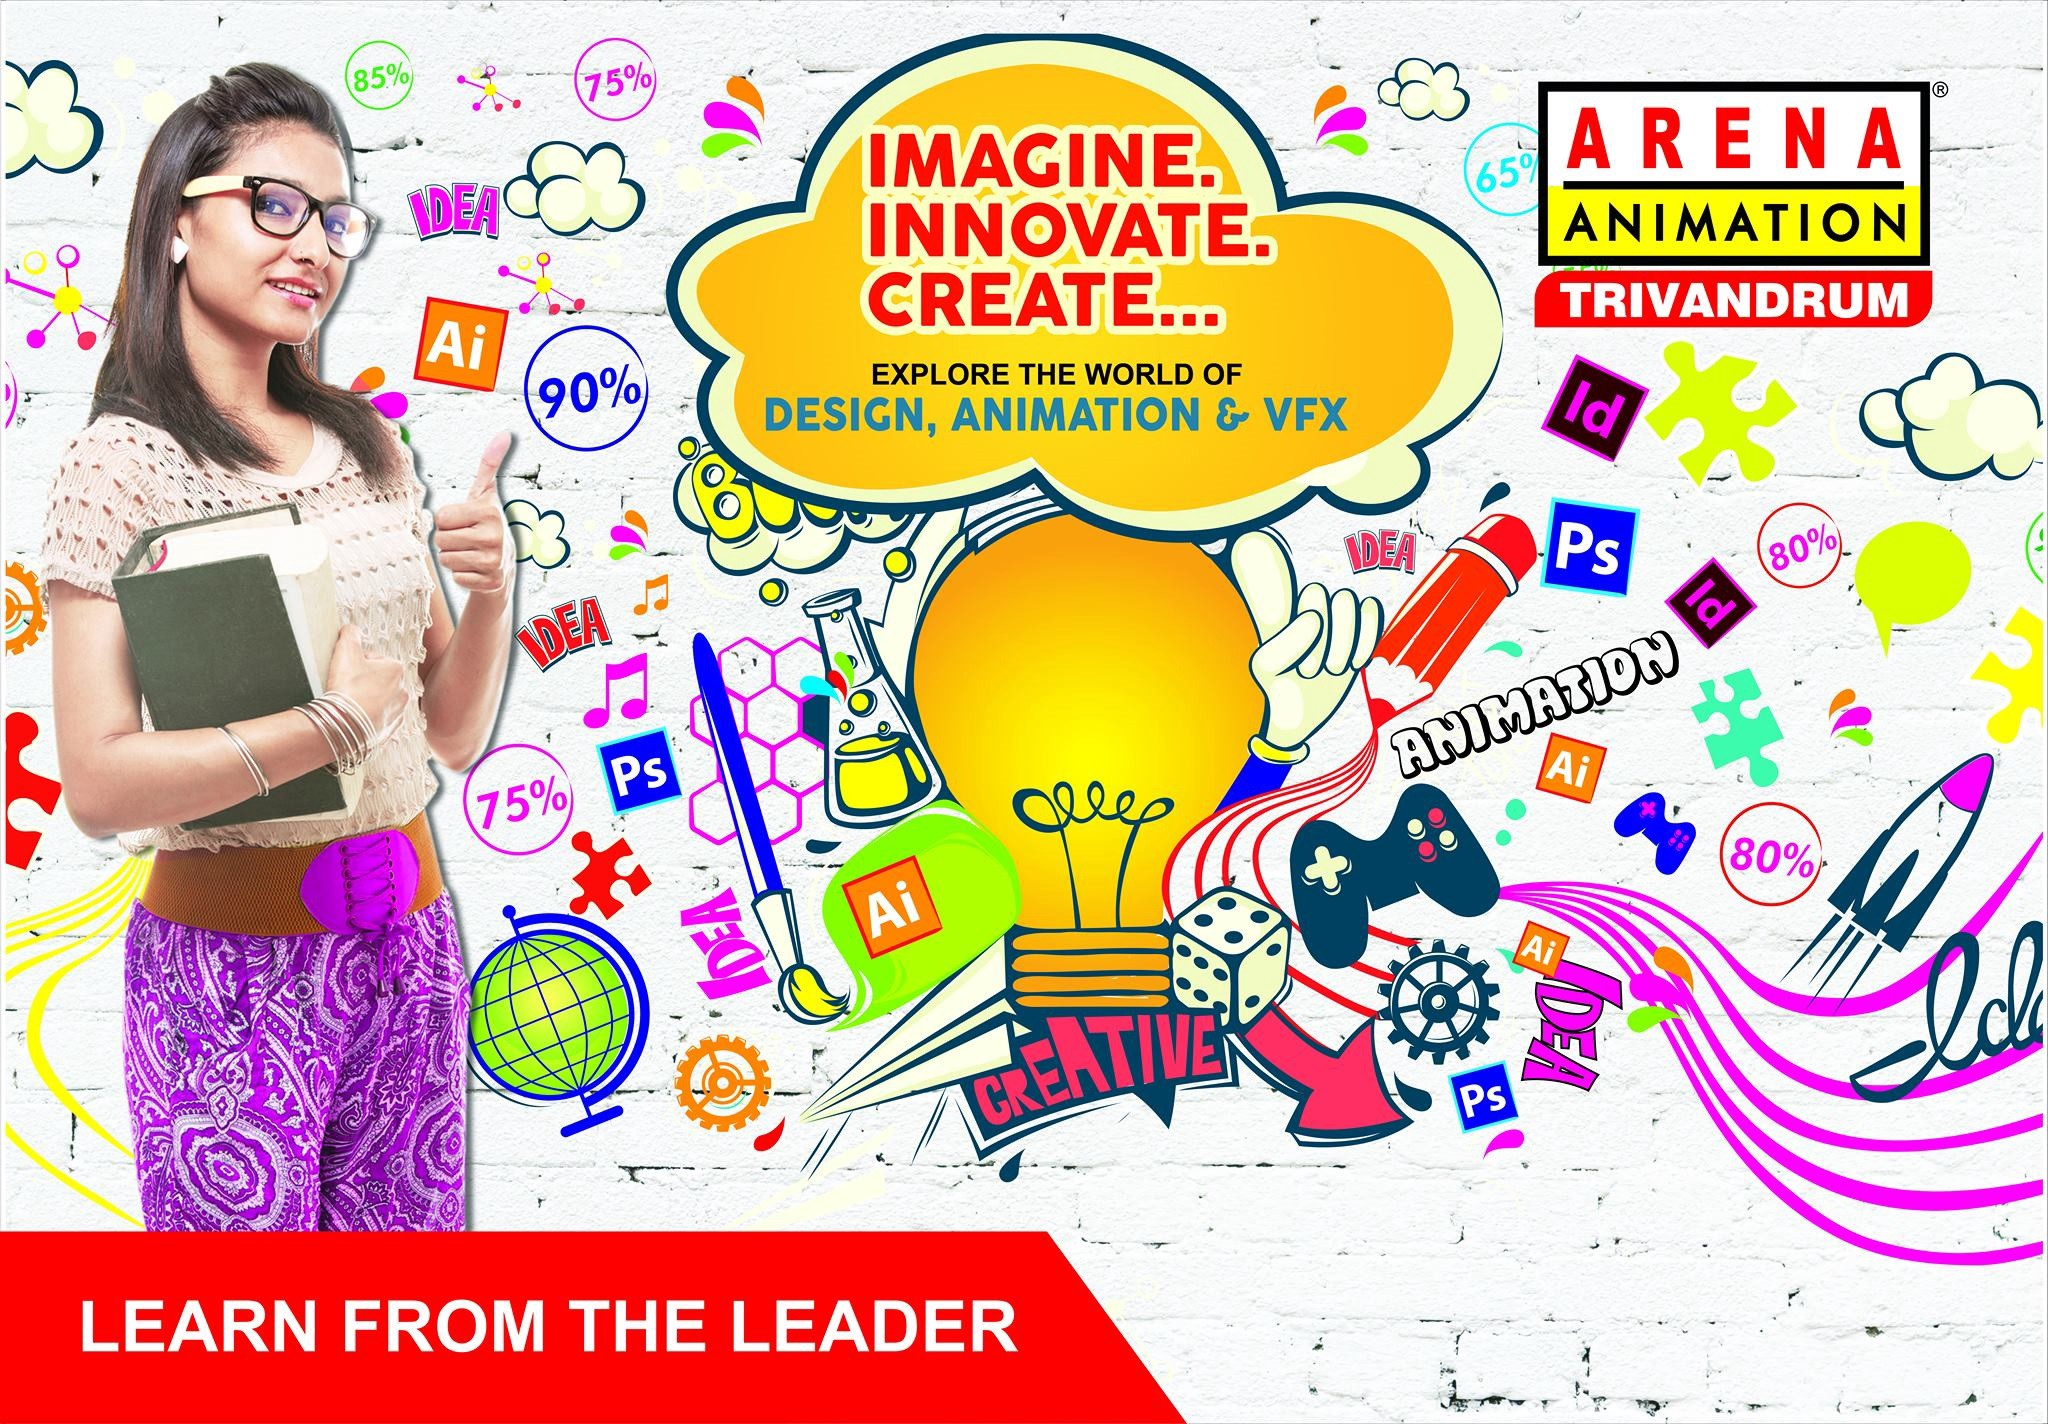 Web Design Course In Thrissur Can Take Your Career To The Next Level By Arena Animation Medium